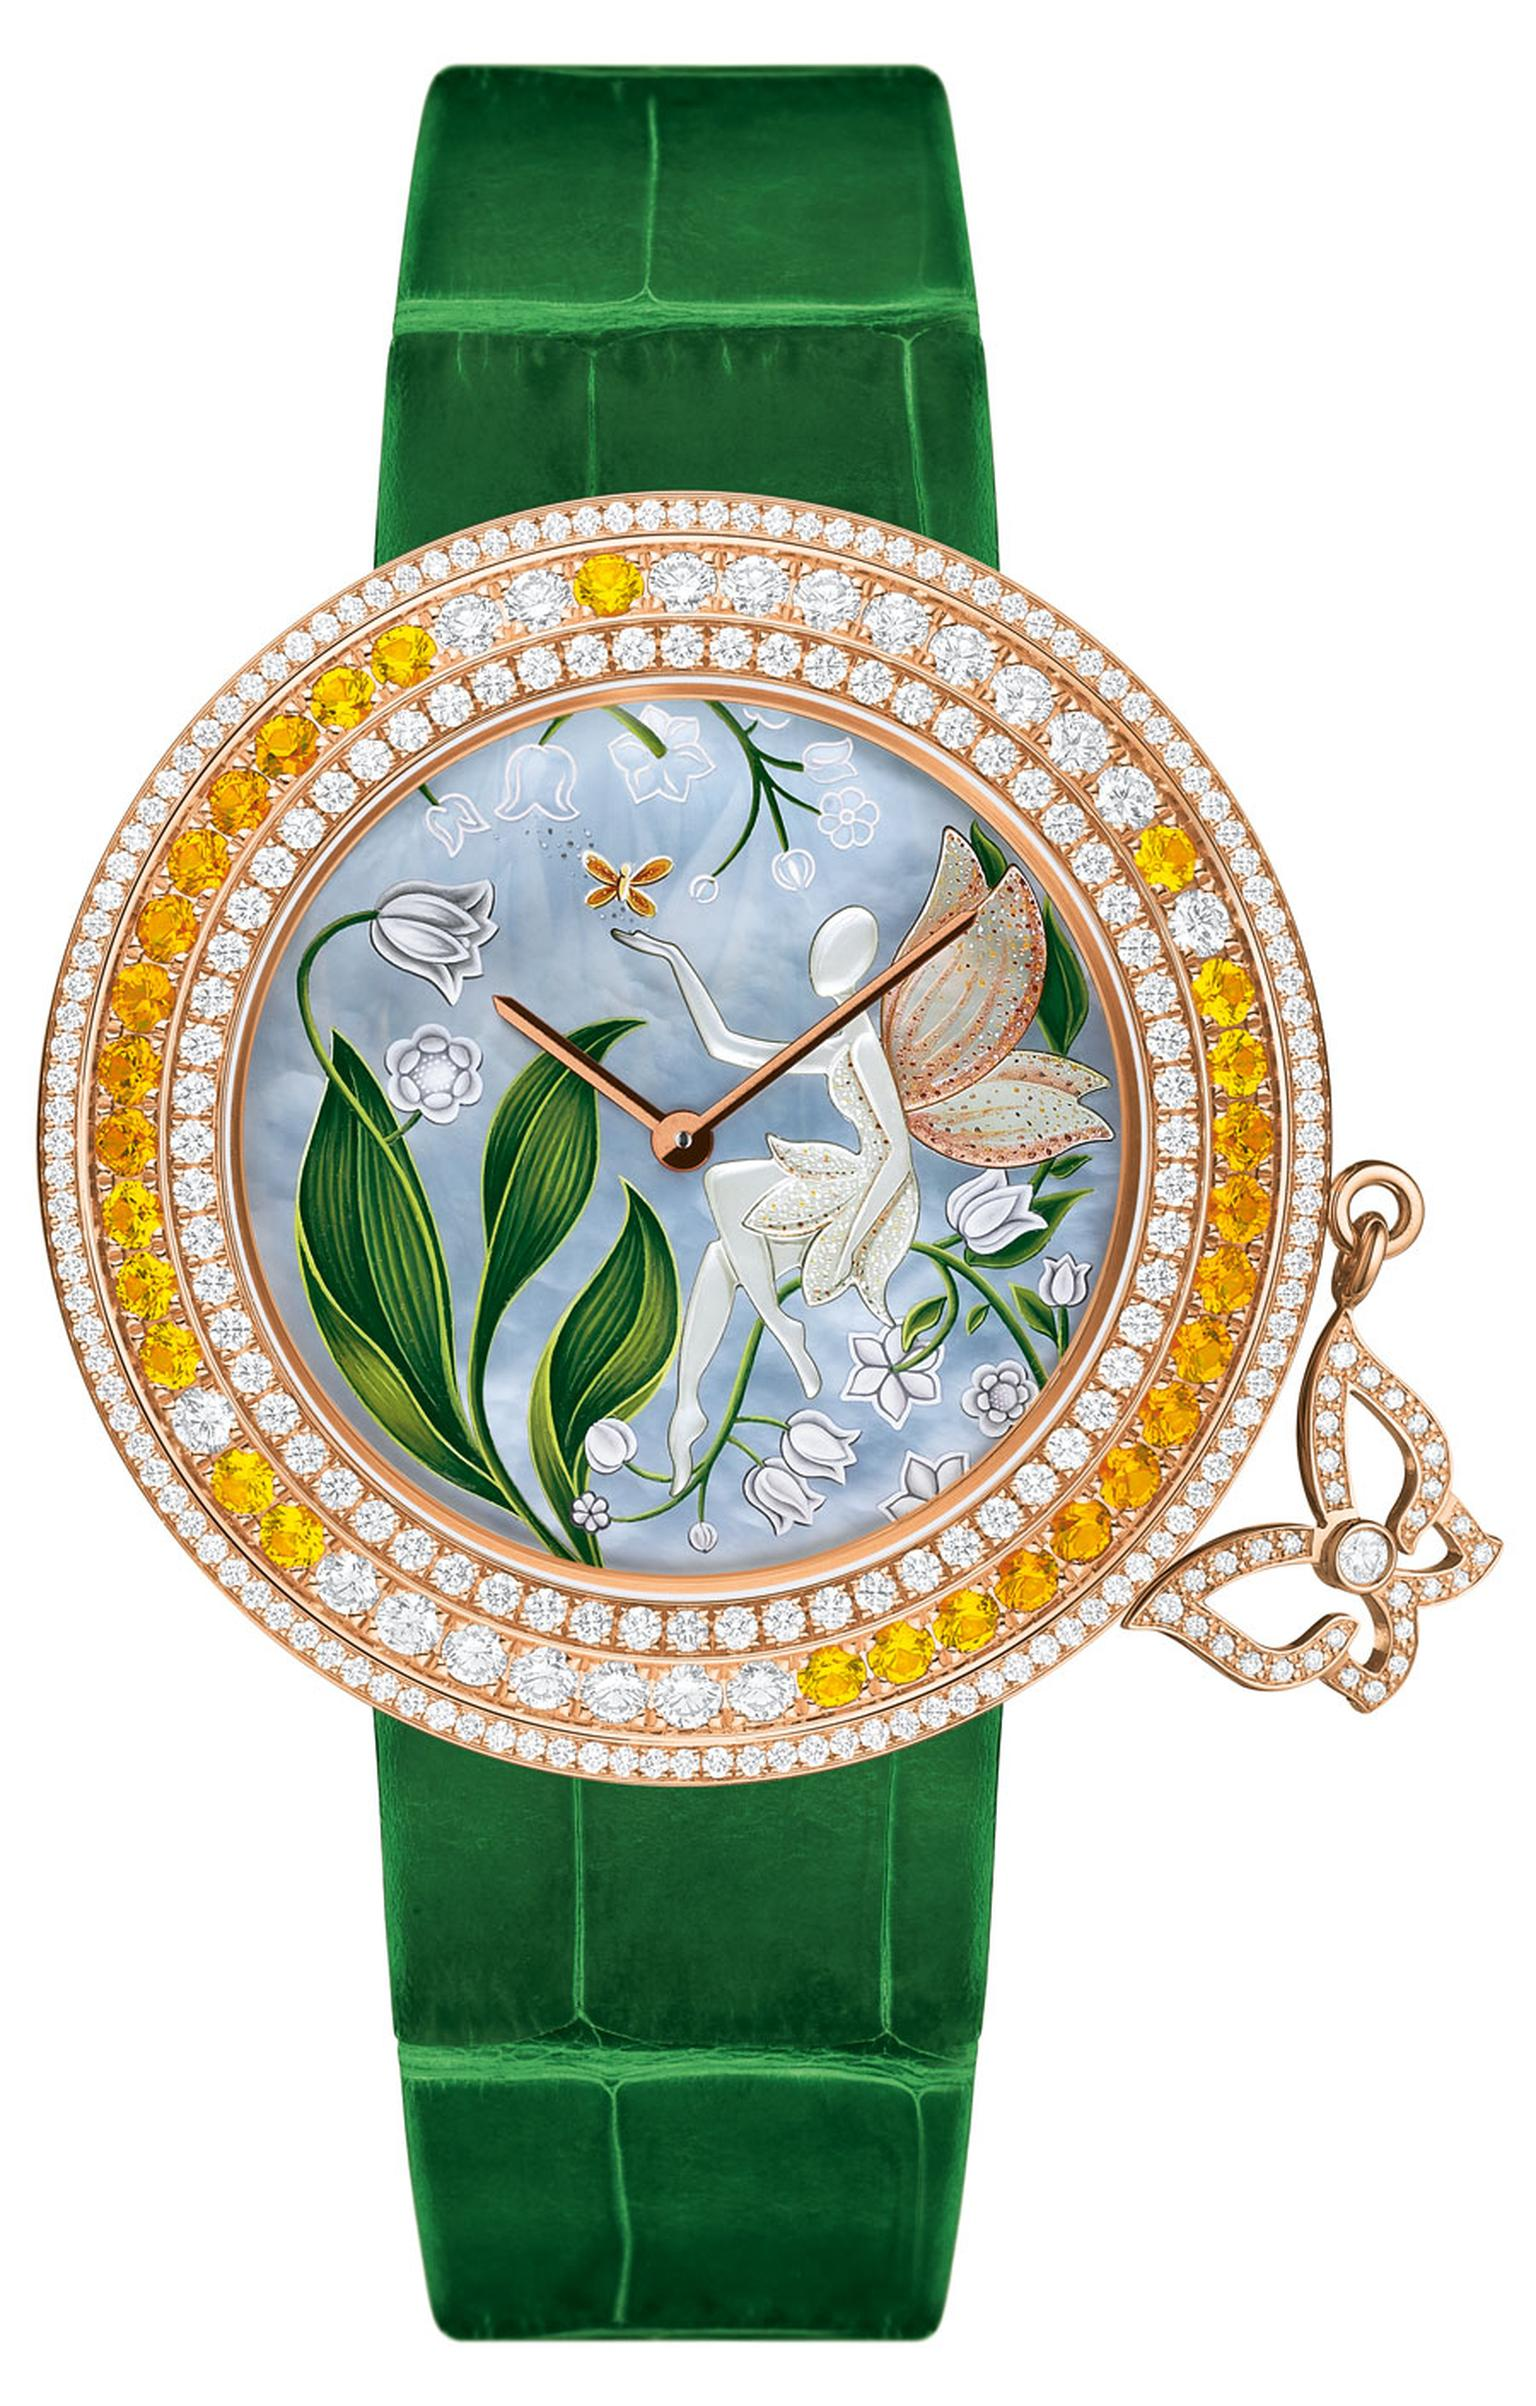 Van-Cleef-Arpels-Charms-packshot-02-Muguet-HD.jpg